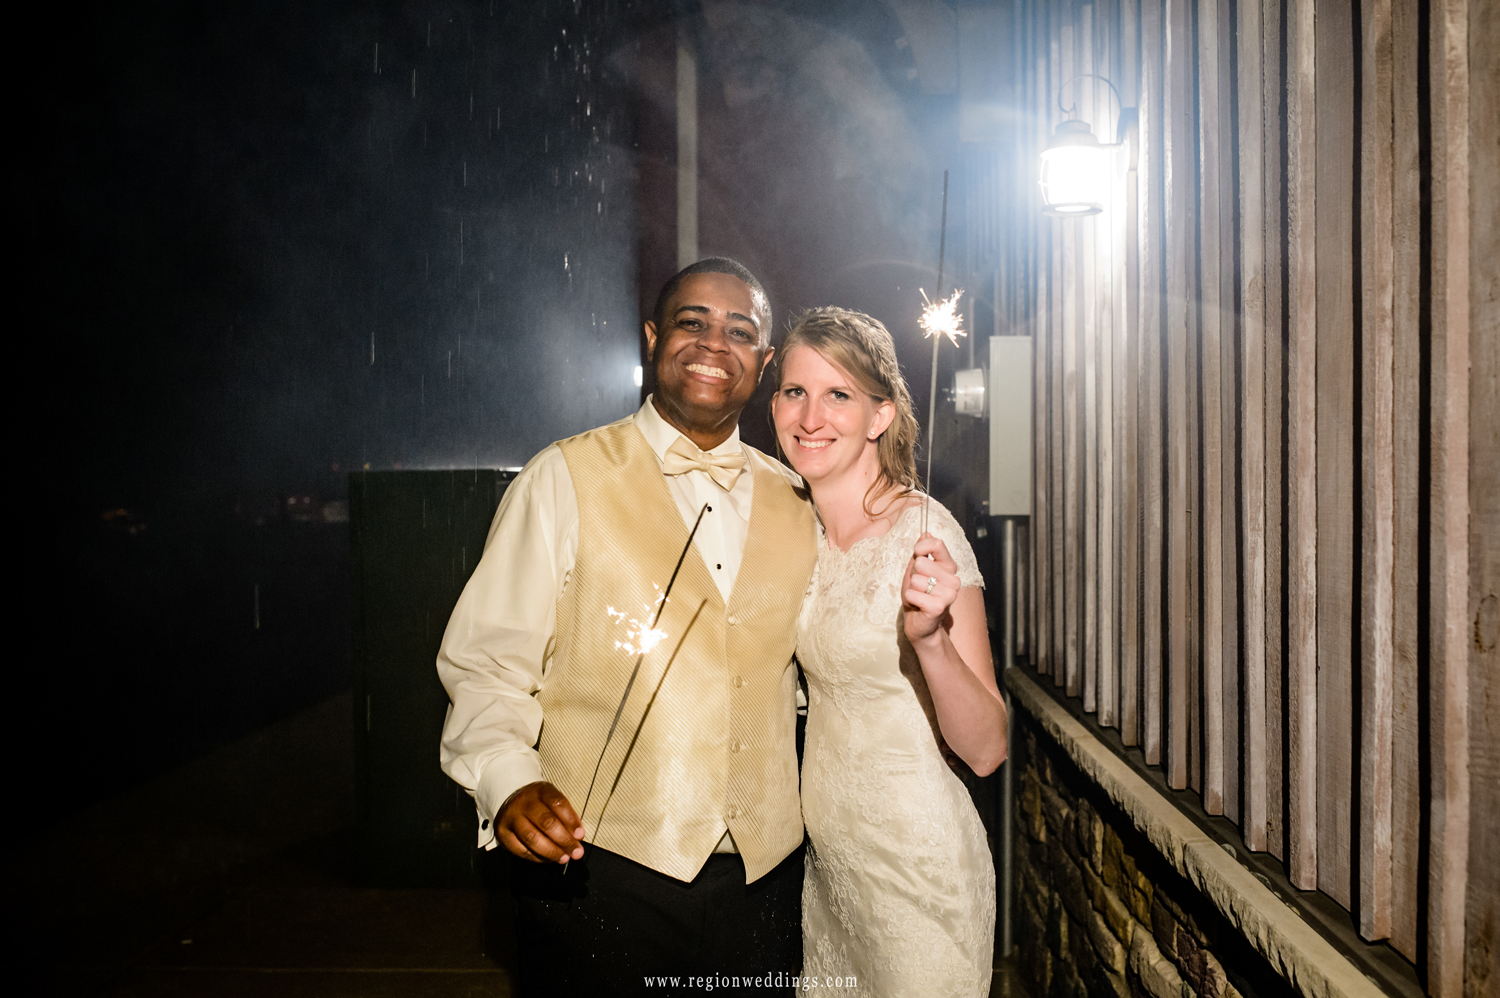 The bride and groom pose with sparklers at their wedding reception.